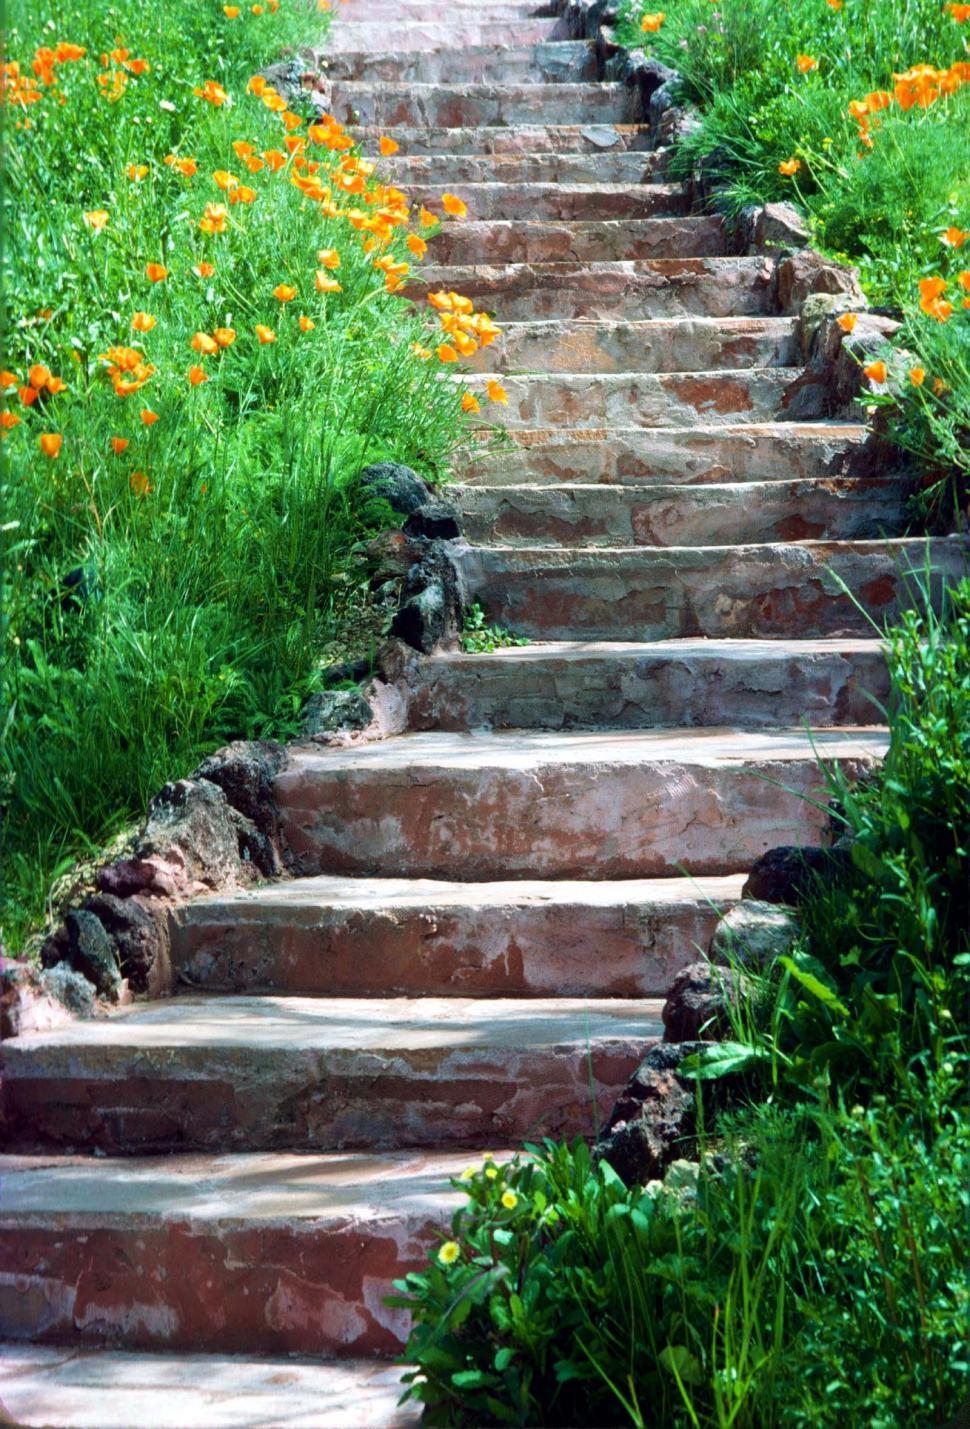 Download Free Stock Photo of fields flowers blooms wildflowers poppy orange blossoms spring steps stairs stone stairway